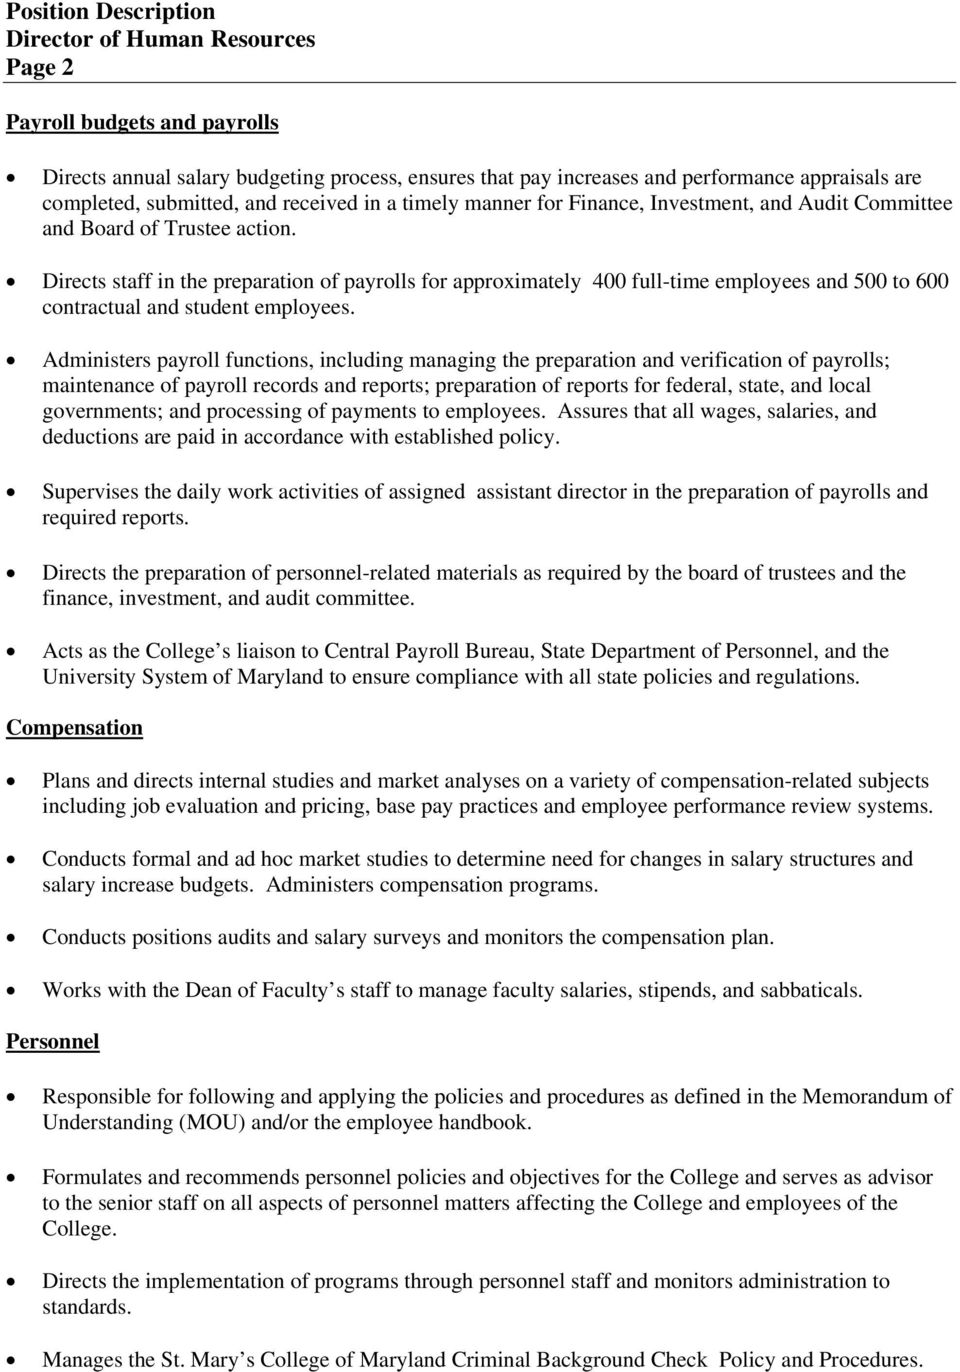 Directs staff in the preparation of payrolls for approximately 400 full-time employees and 500 to 600 contractual and student employees.